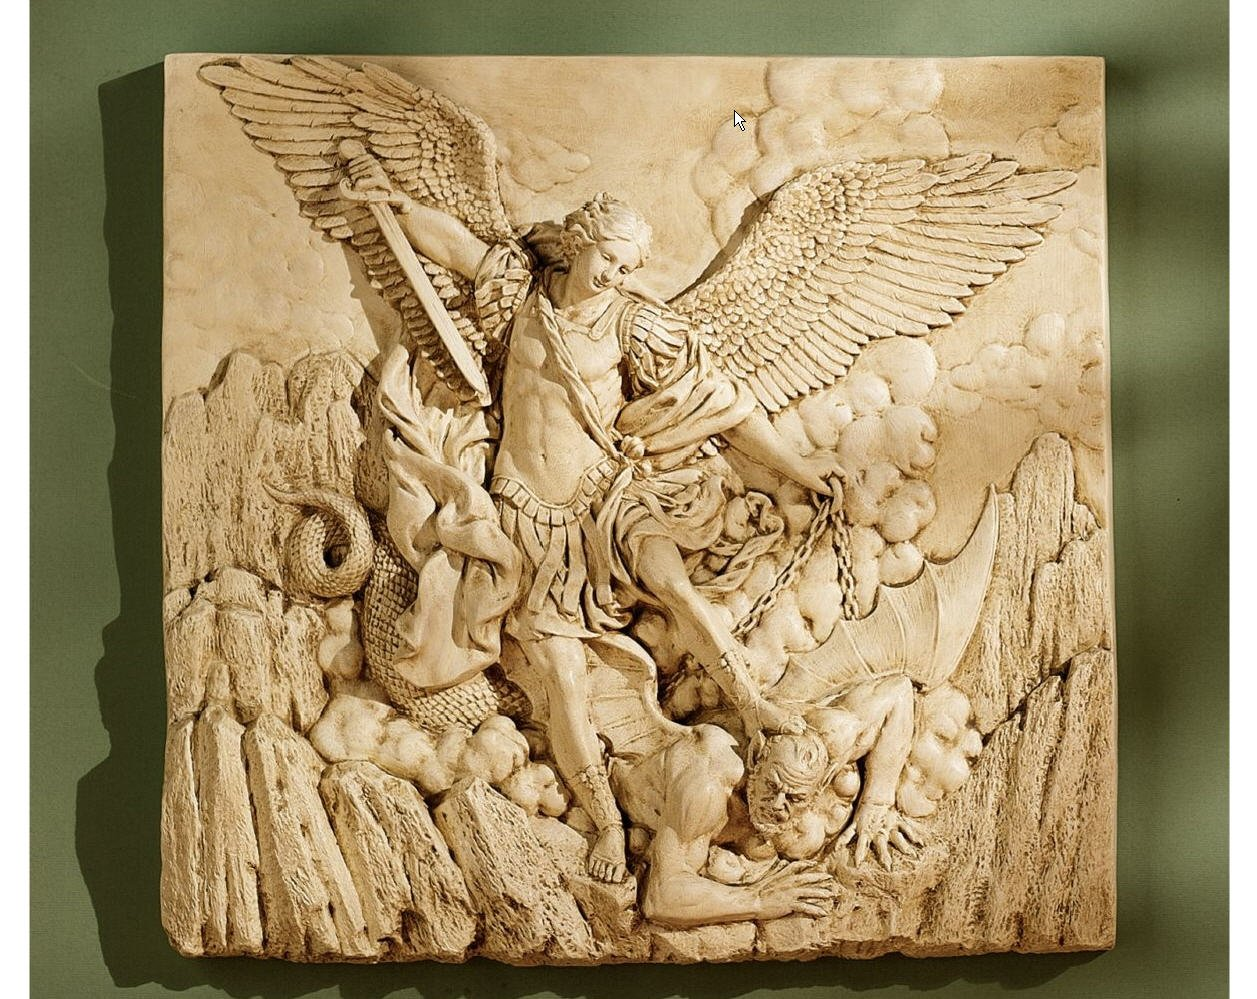 Winged Classic Archangel St. Michael Sculptural Wall Frieze Decor Christian Art After the 1636 Painting By Guido Reni